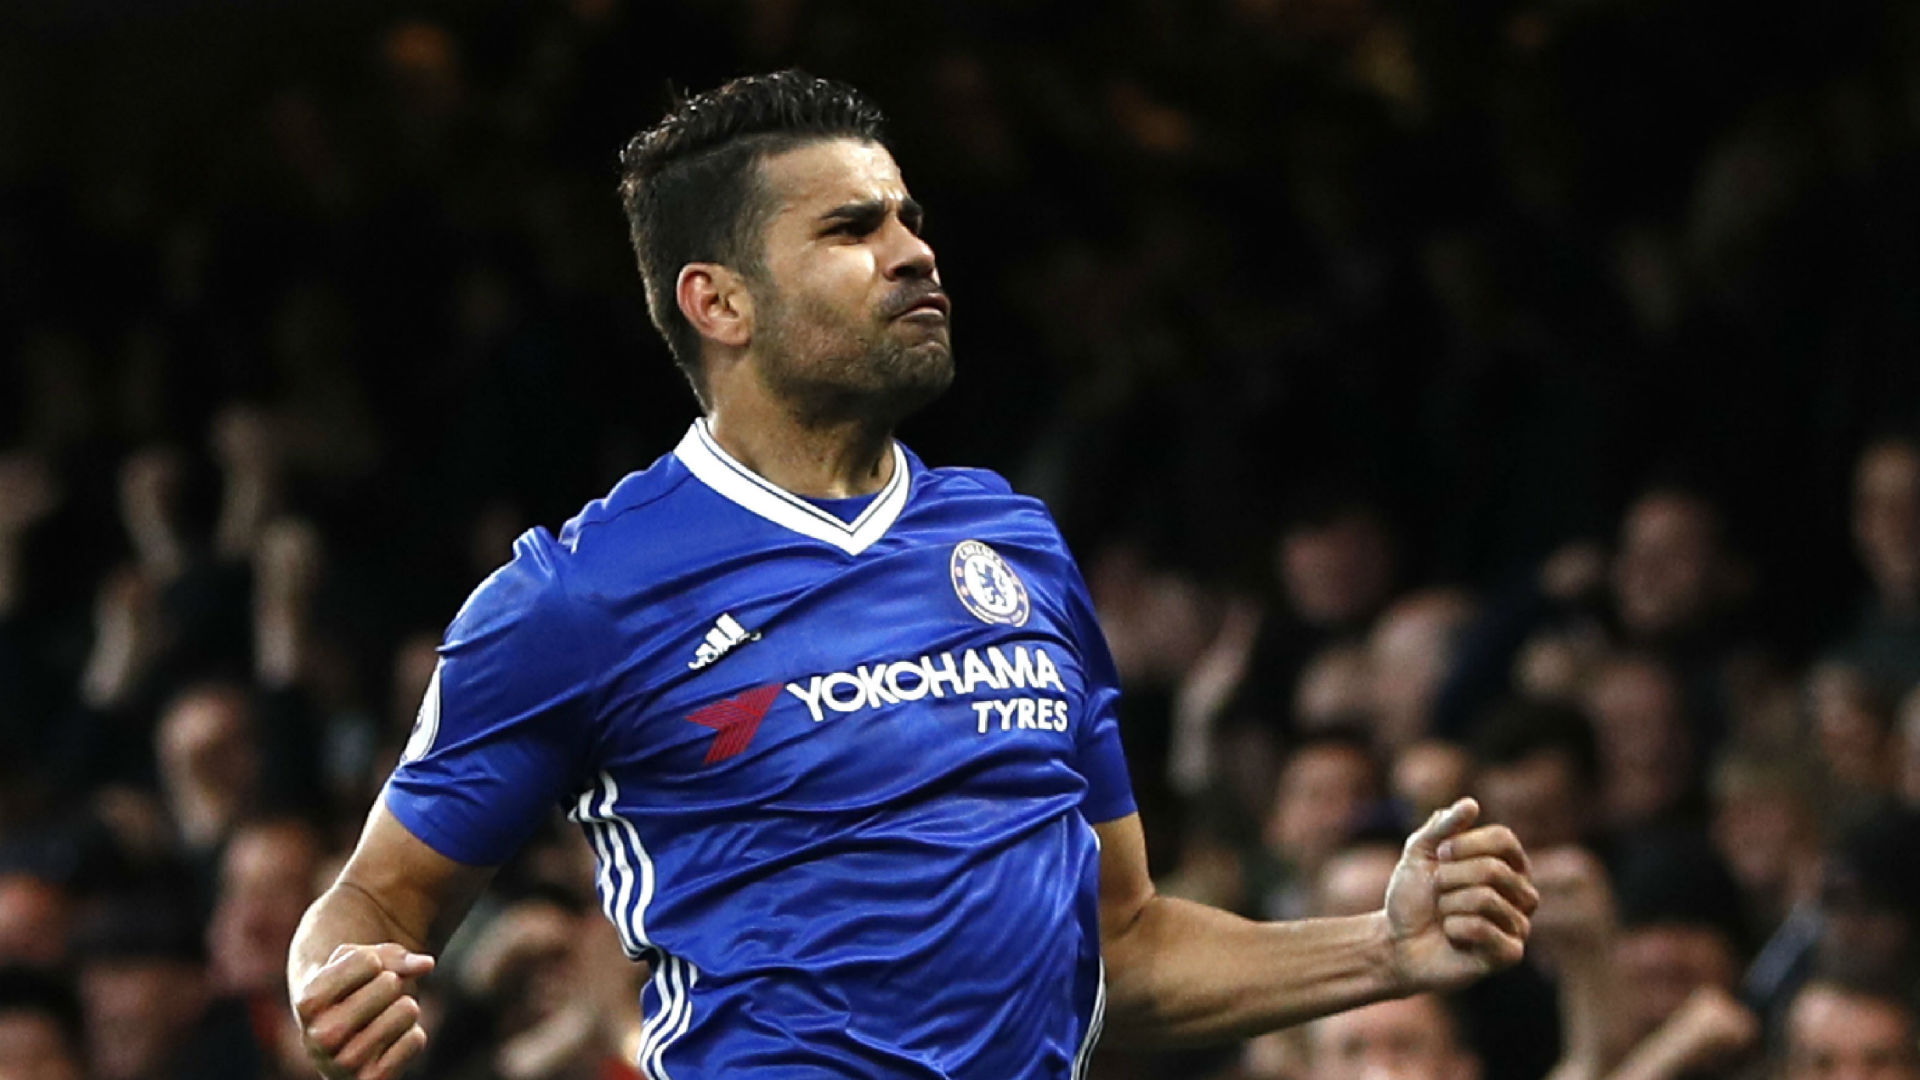 Chelsea's Diego Costa: I am the owner of my future